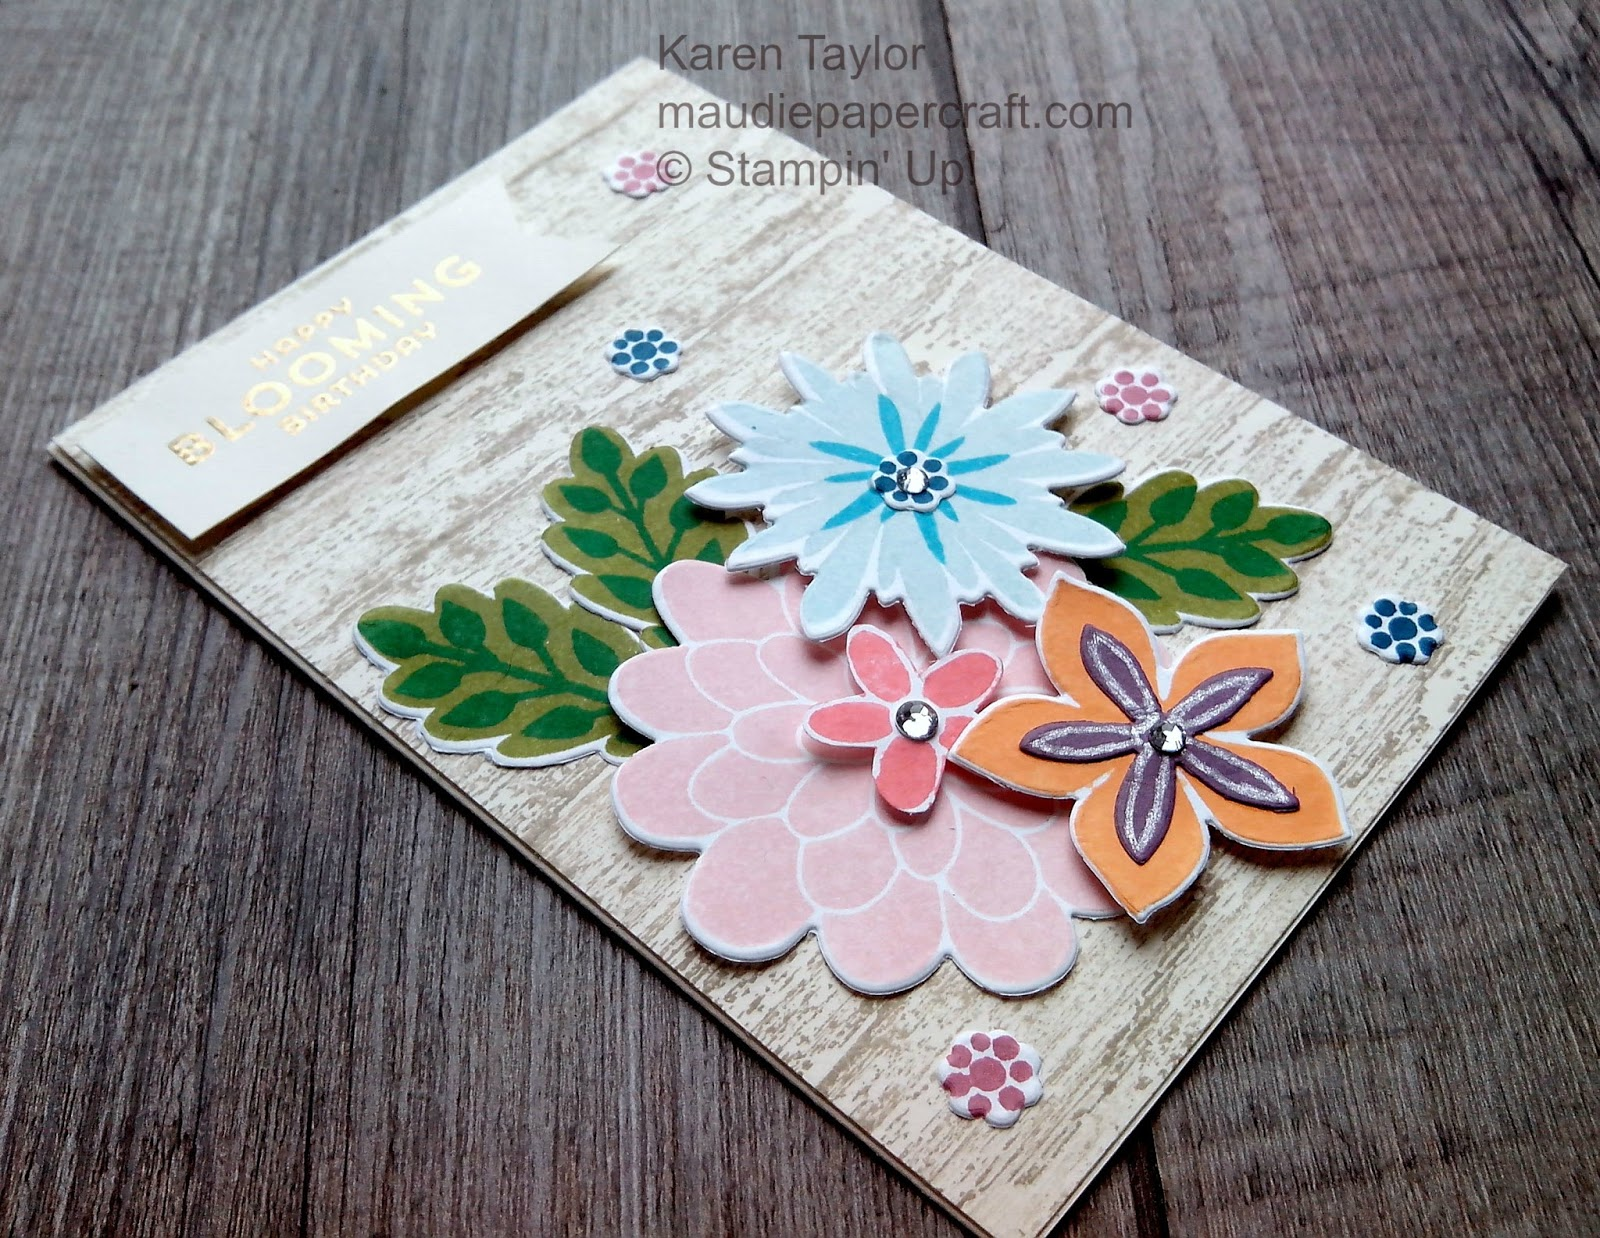 Mau Papercraft Stampin Up Flower Patch card